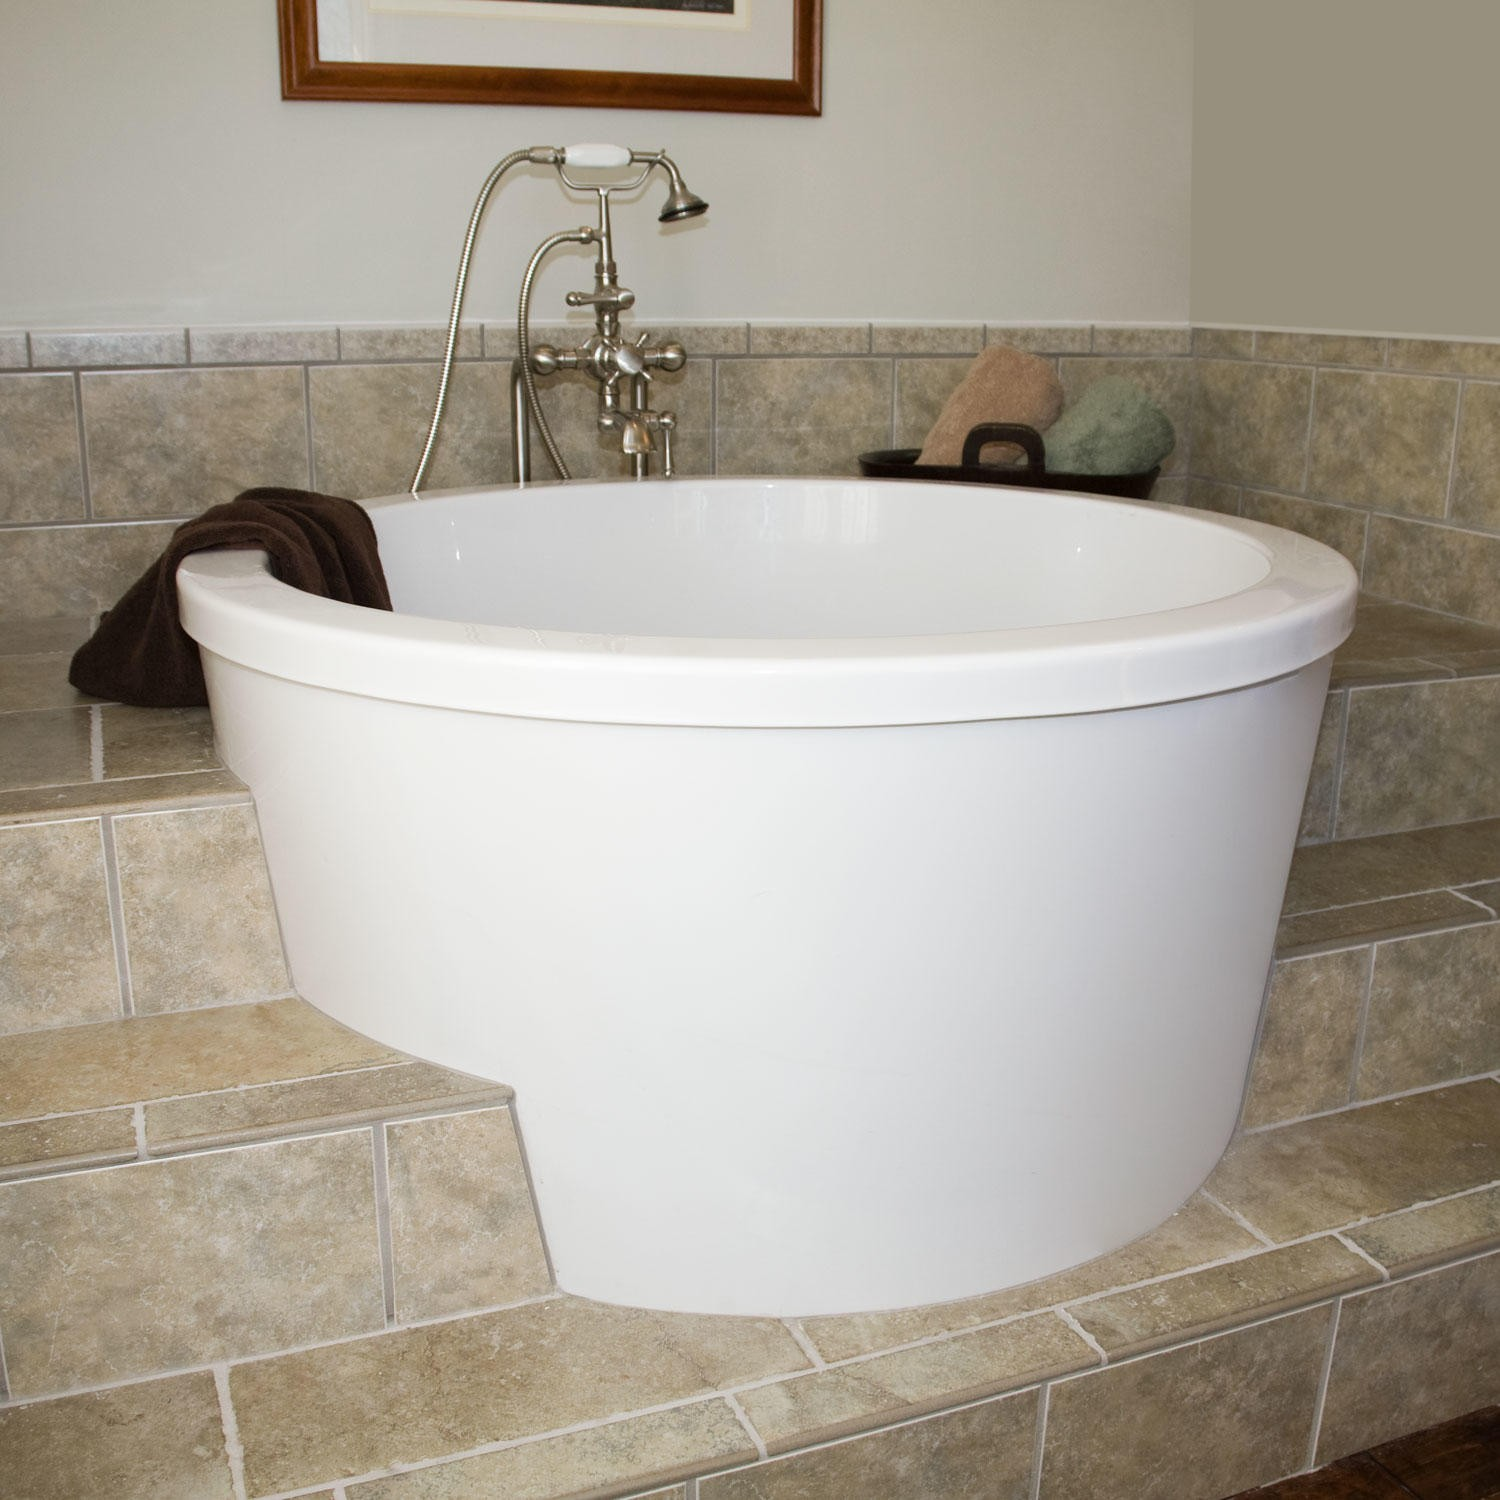 Small soaker tub ideas square japanese soaking tub small for Bathroom soaking tub ideas